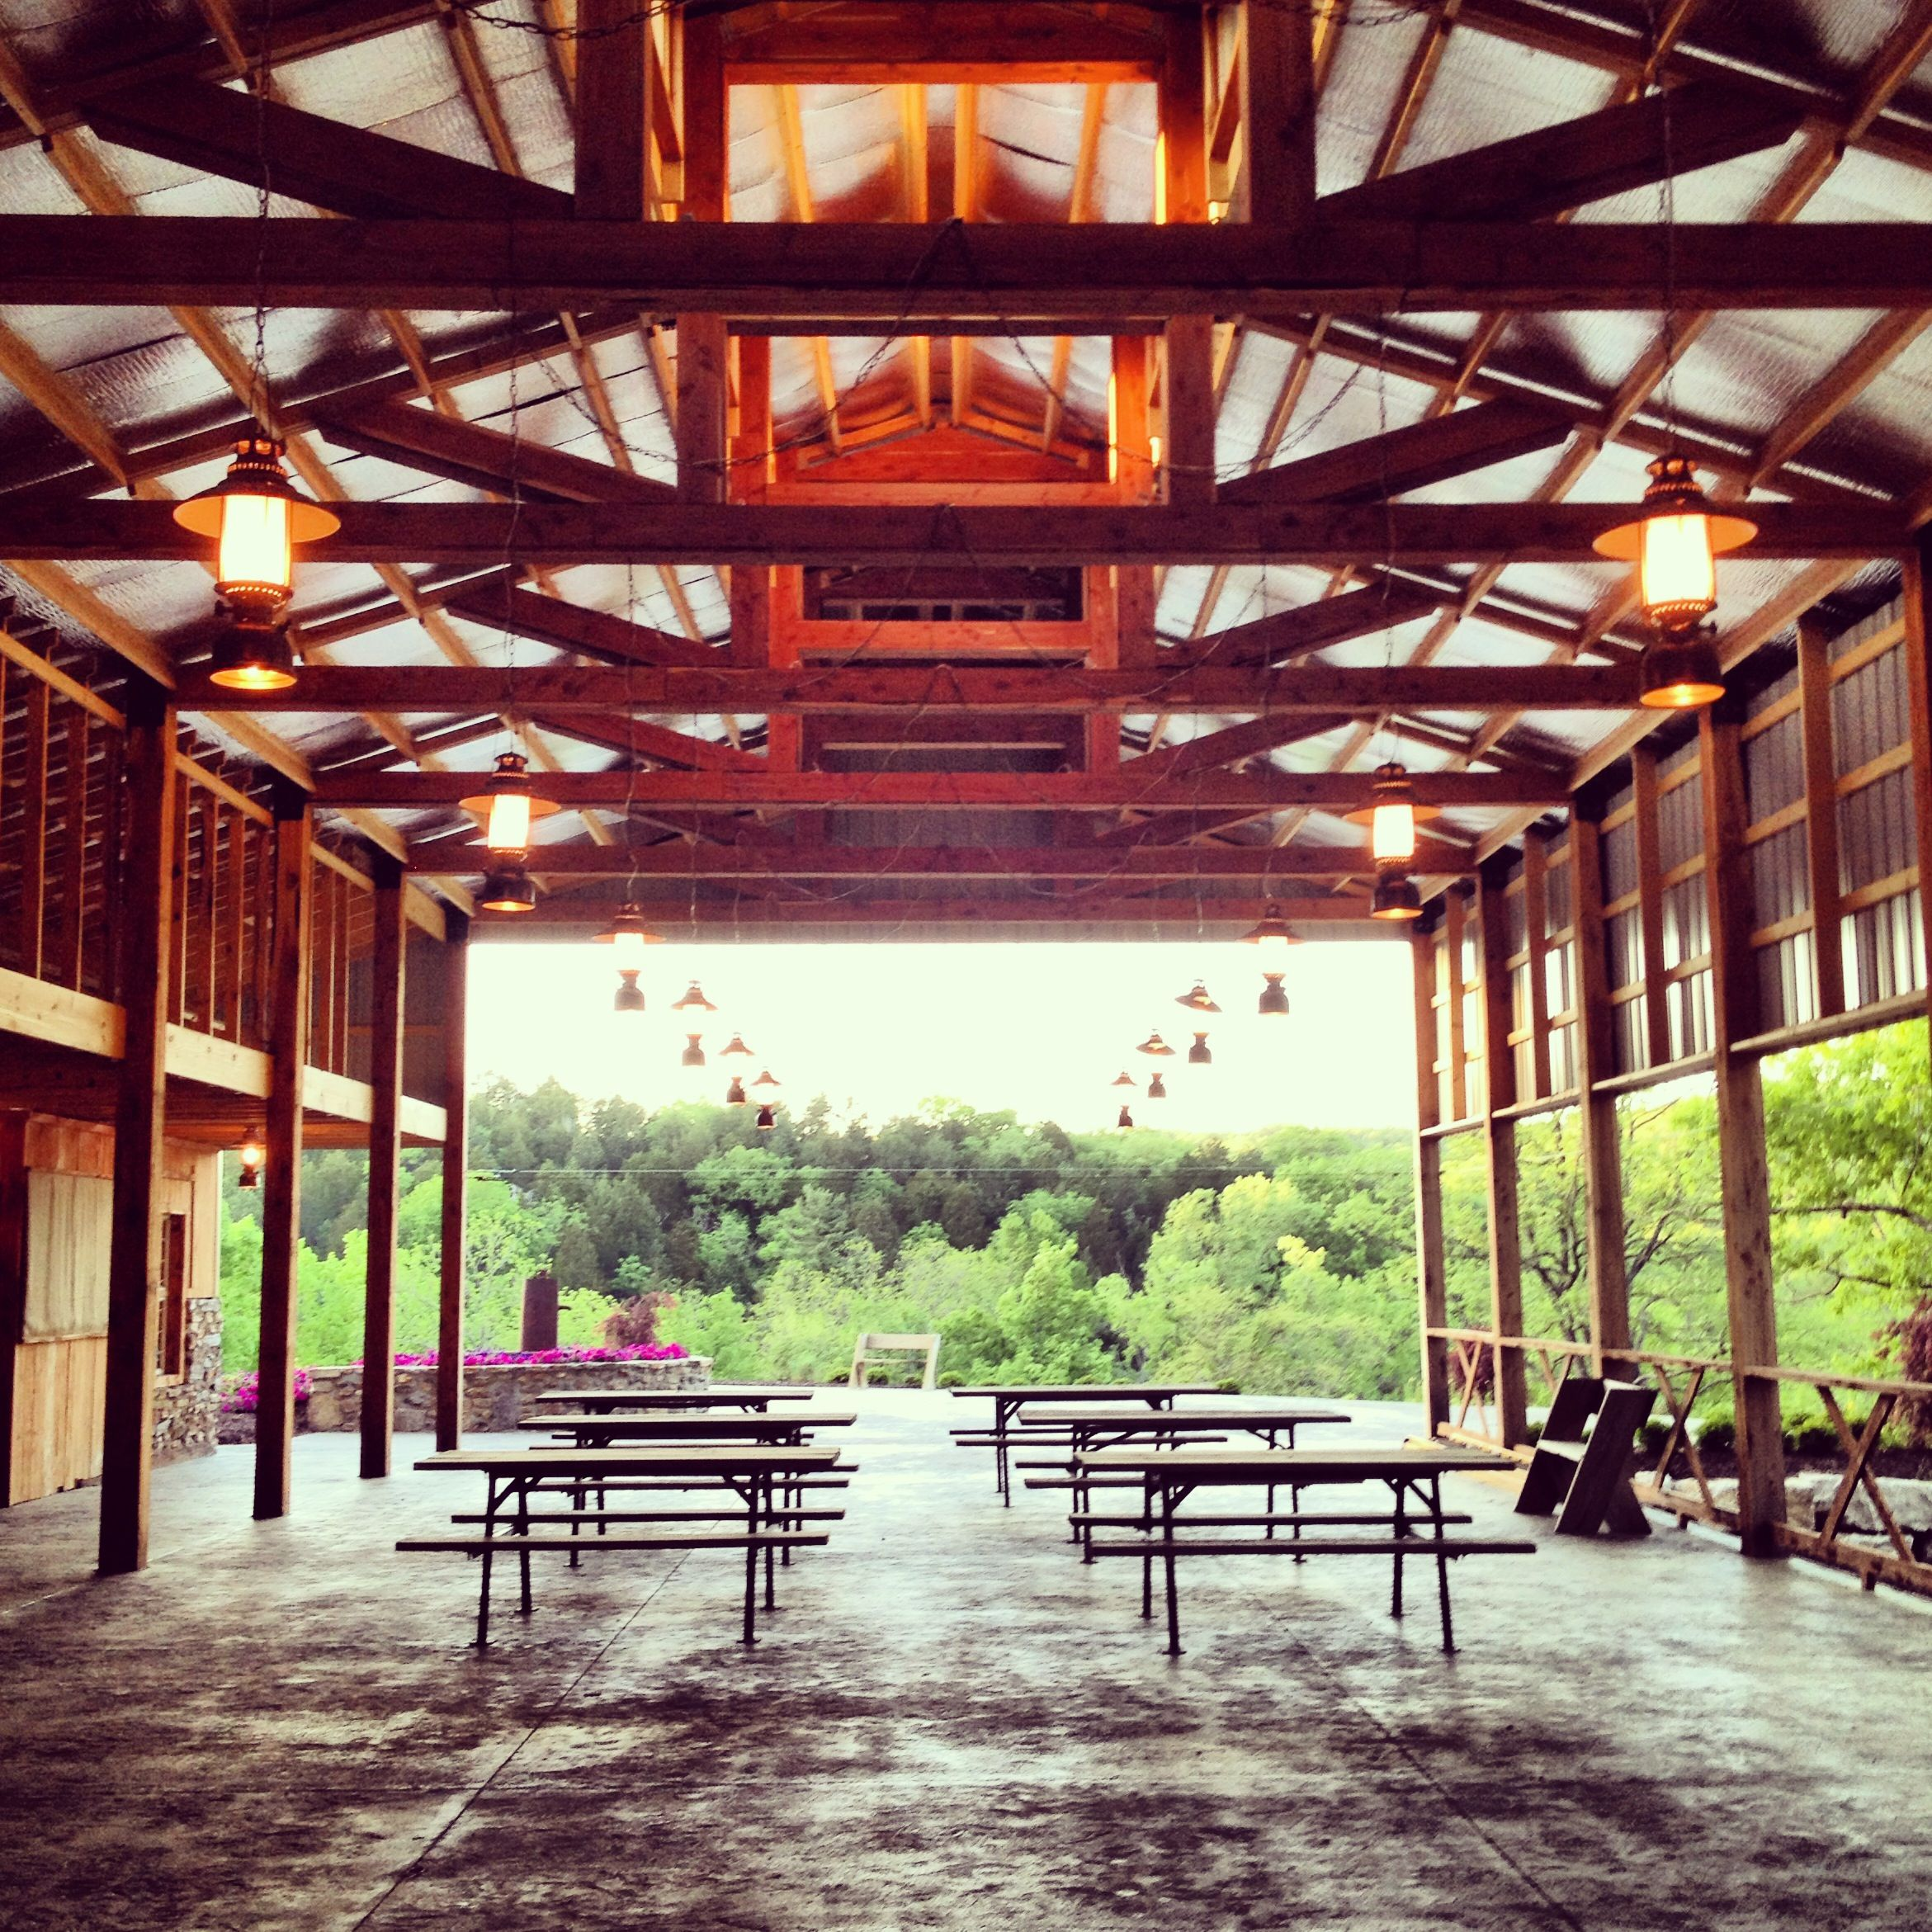 Wedding Reception Venues St Louis: 5 Questions To Ask Before Booking A St. Louis Barn Wedding